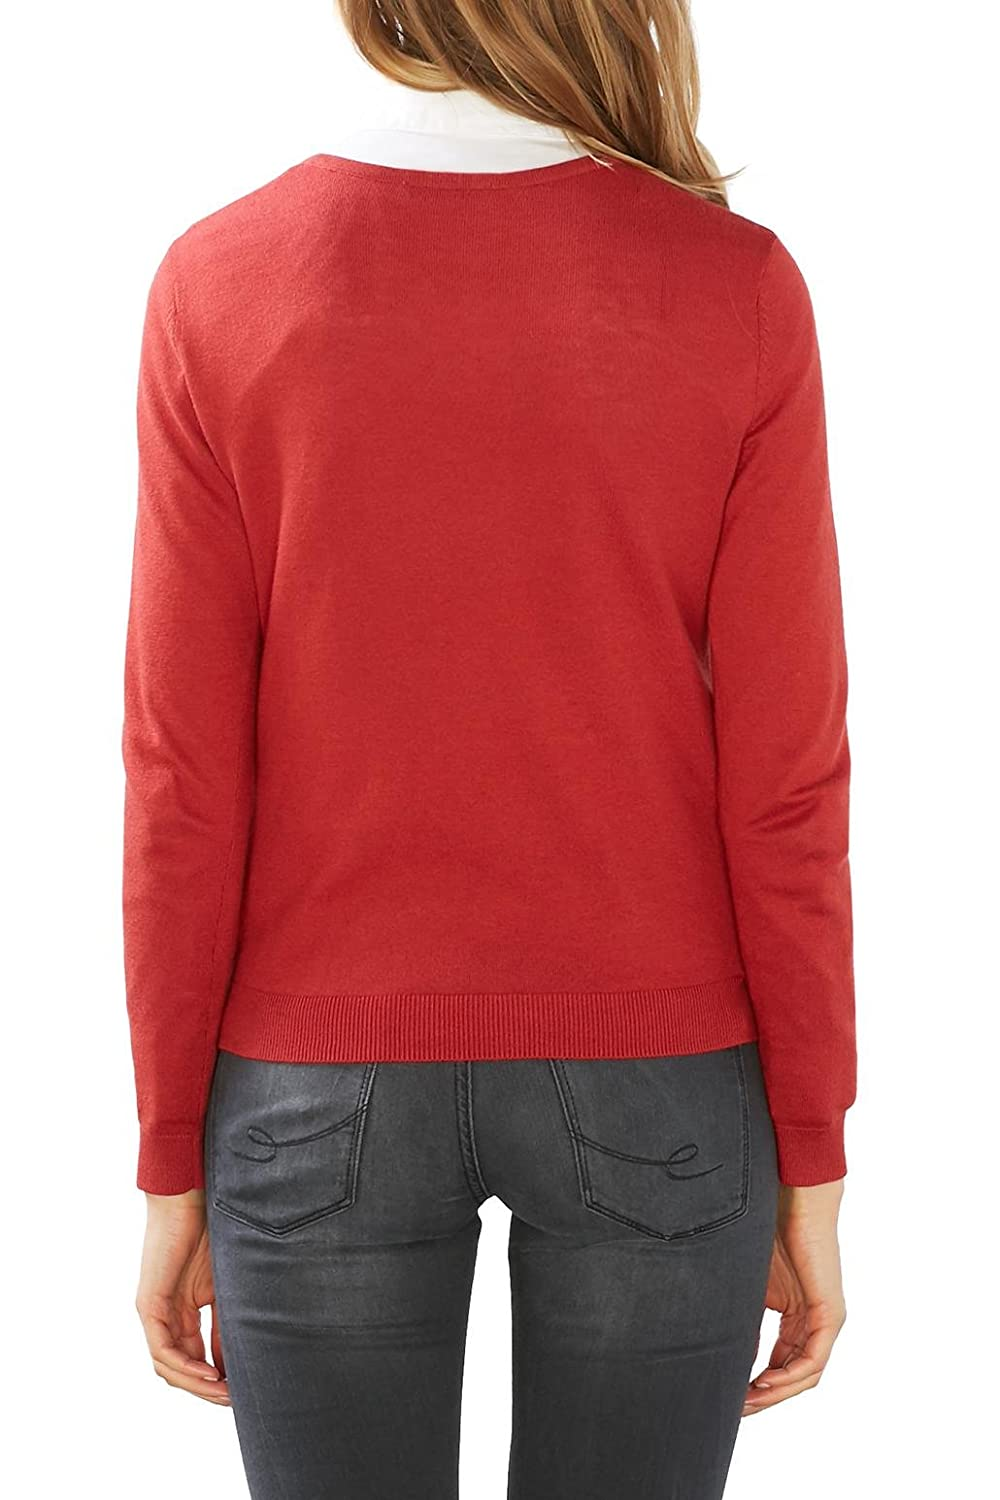 By taille 076cc1i001 Et Rouge Vêtements X Small 34 Red Edc dark Esprit Femme Pull Accessoires Fabricant TnAxqSWF